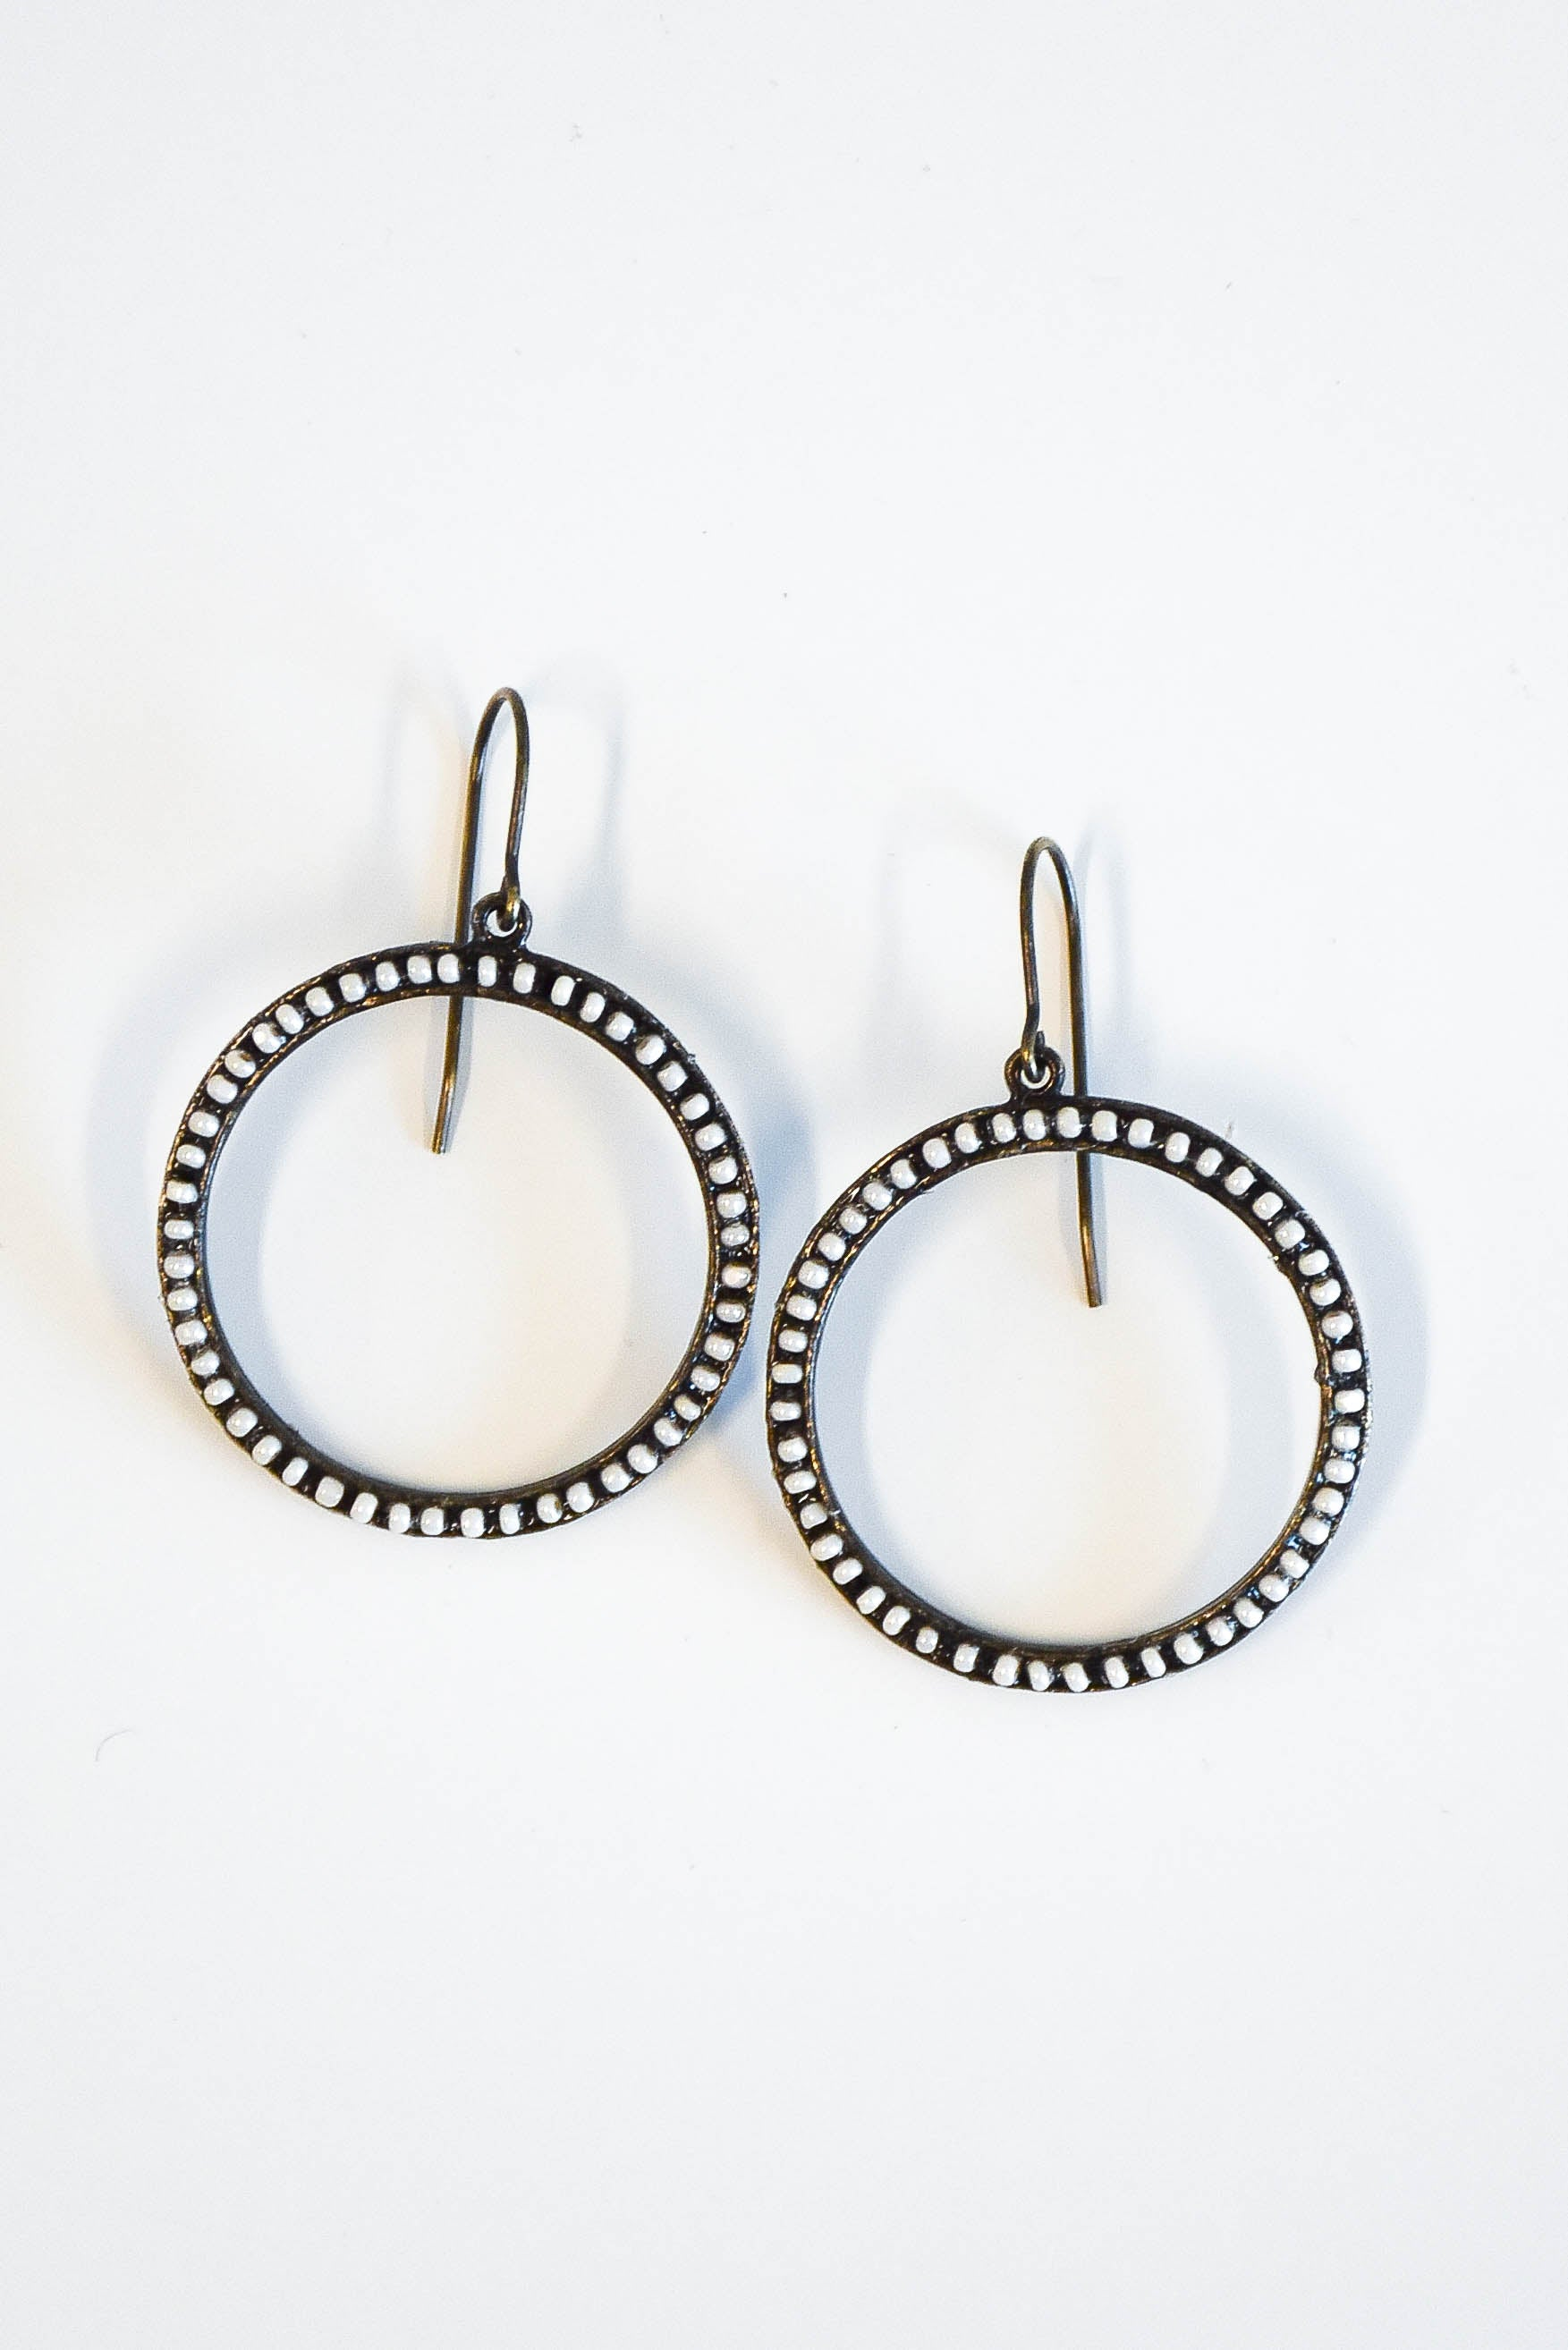 karikoo shop color open geometric circle frame earrings silver gold